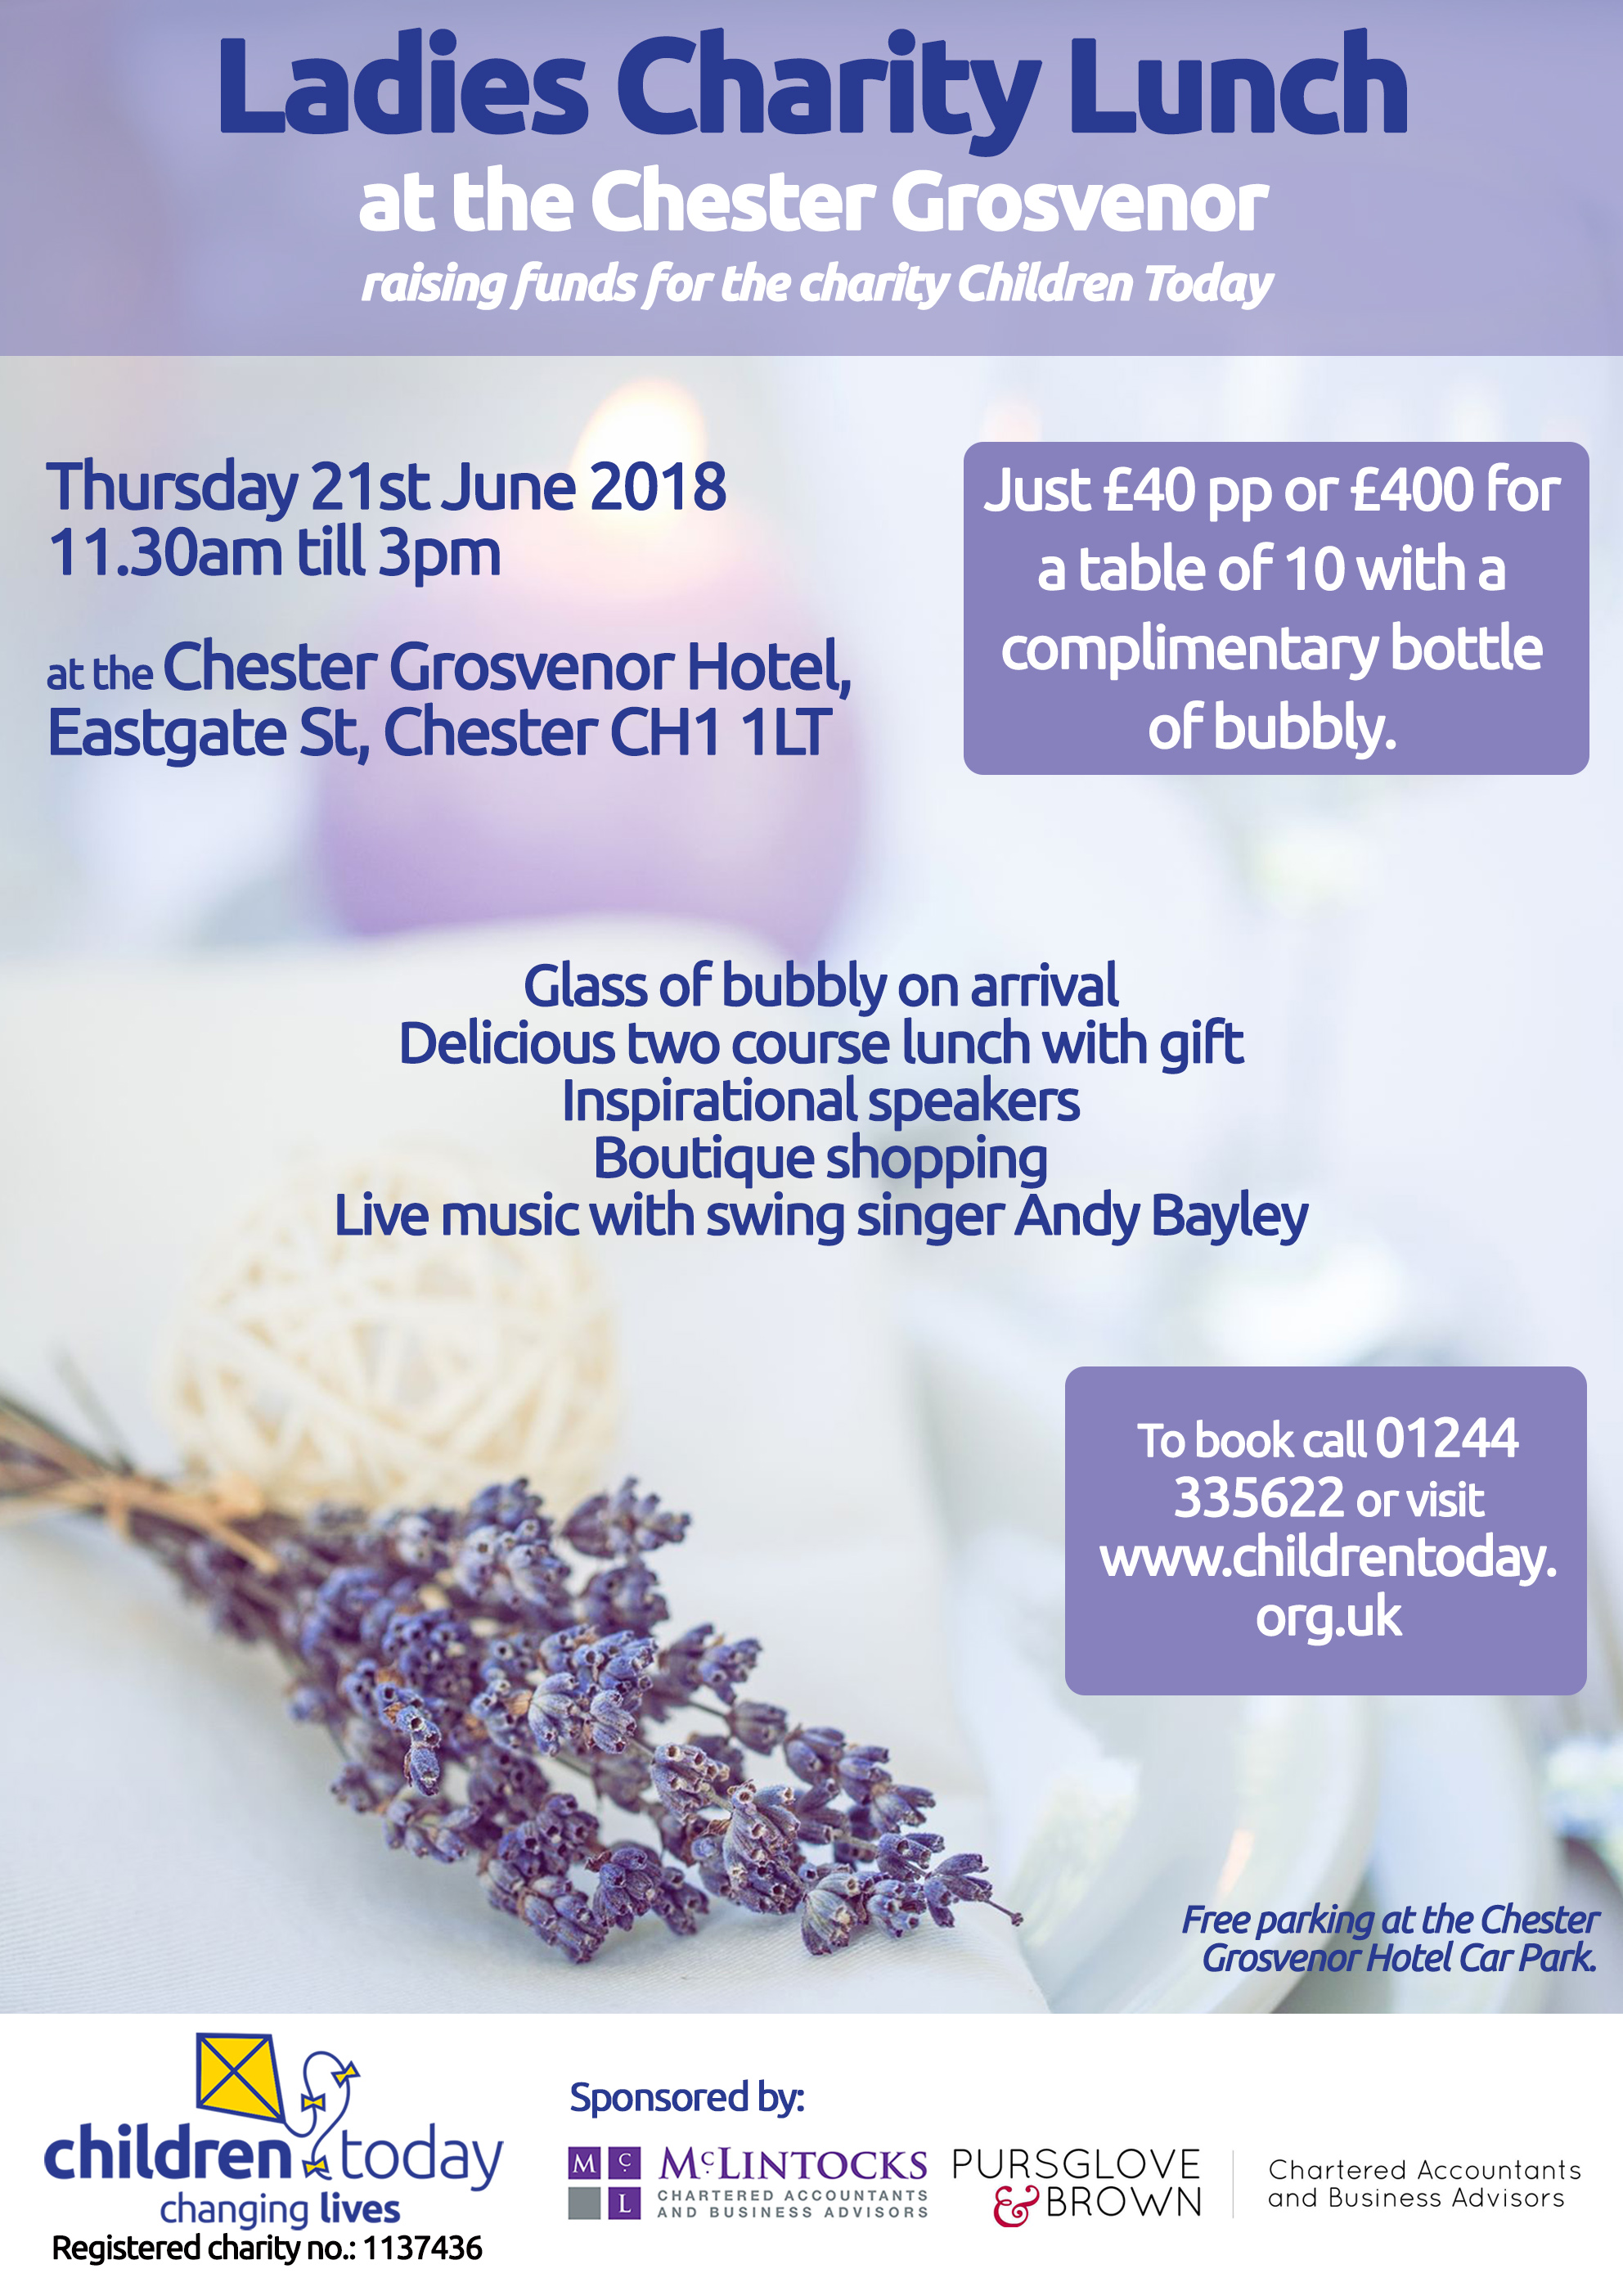 Ladies Charity Lunch at the Chester Grosvenor